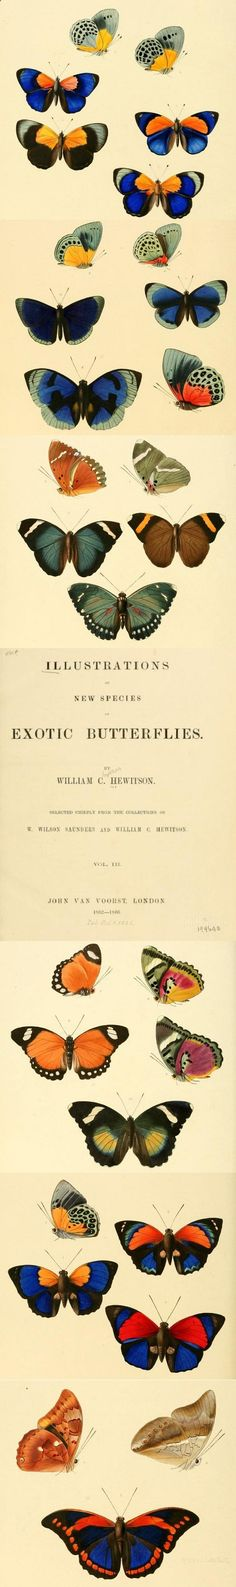 Click to read this butterfly book from 1856. These butterflies are great inspiration for woodworking, craft, art and many other DIY projects! Announcing: The world's Largest Collection of 16,000 Woodworking Plans! tedswoodworking-t...